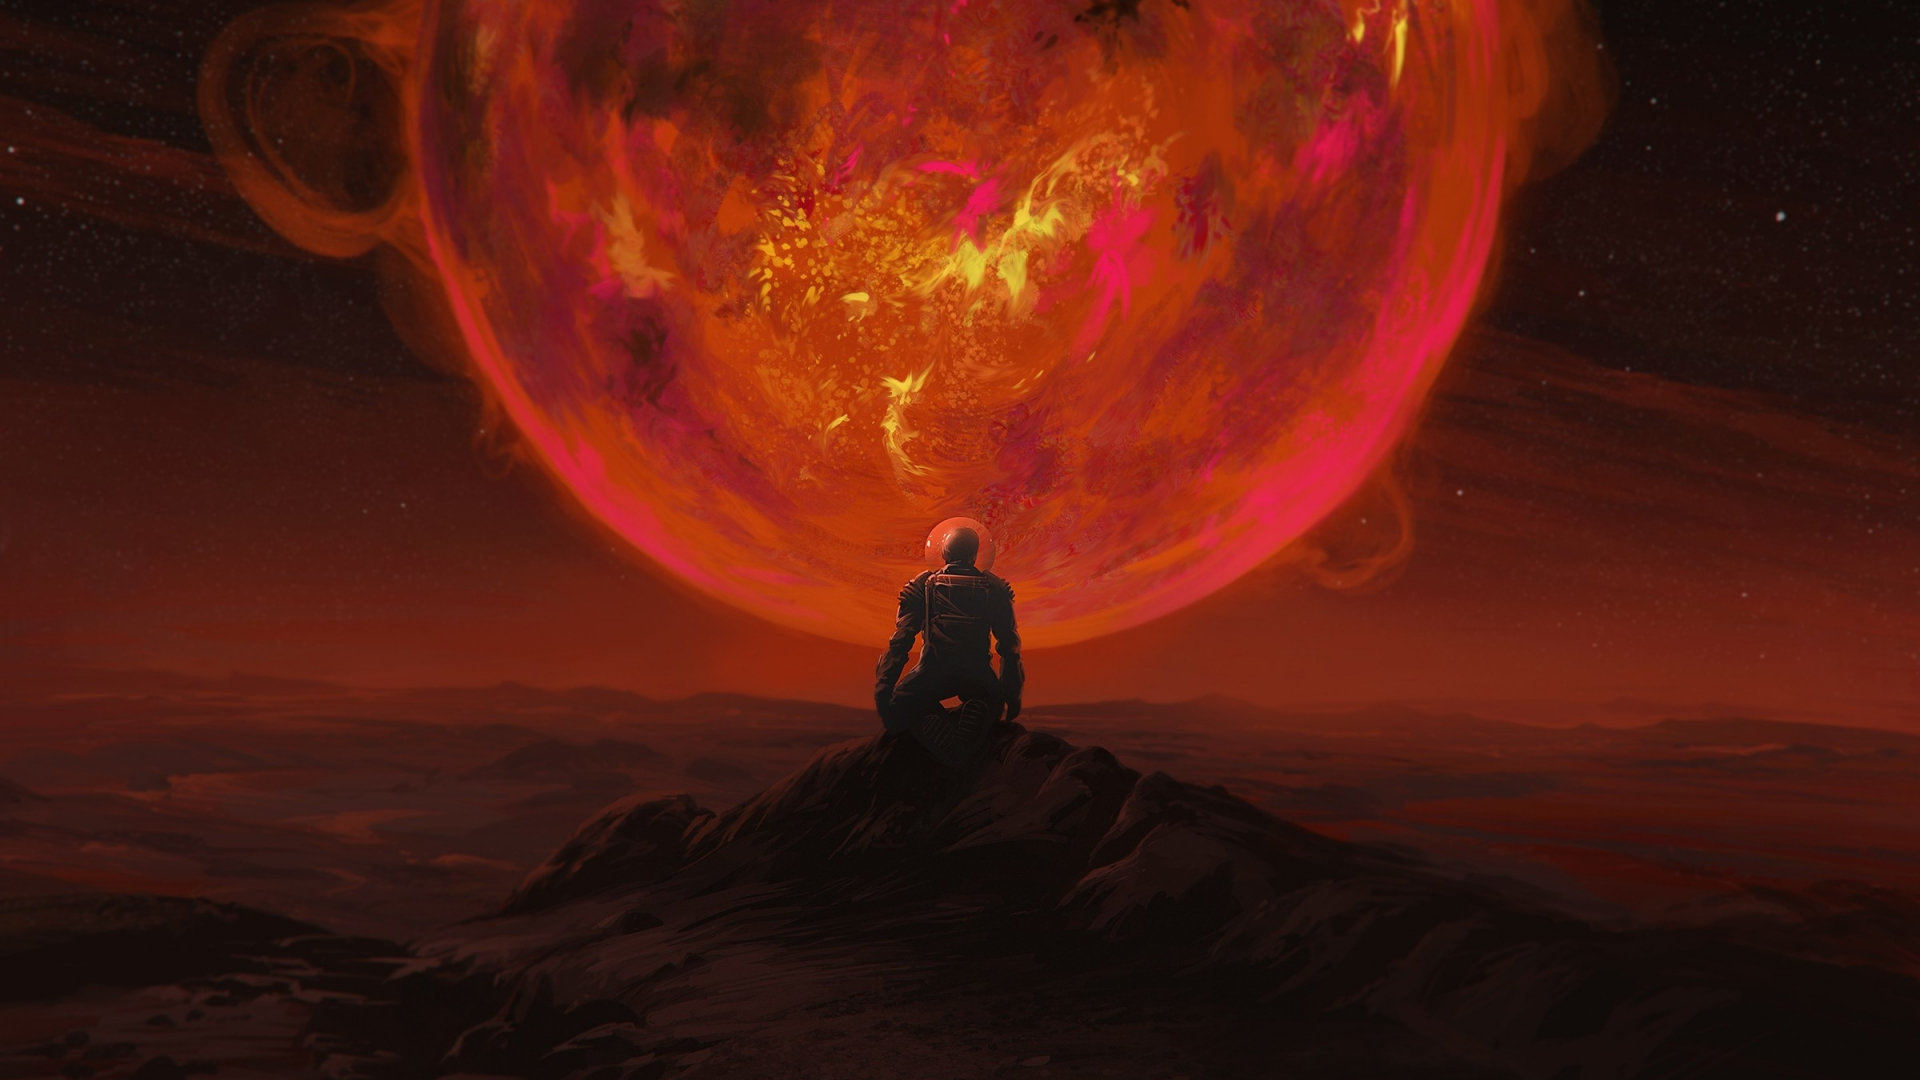 Download 1920x1080 wallpaper red glowing planet, astronaut ...